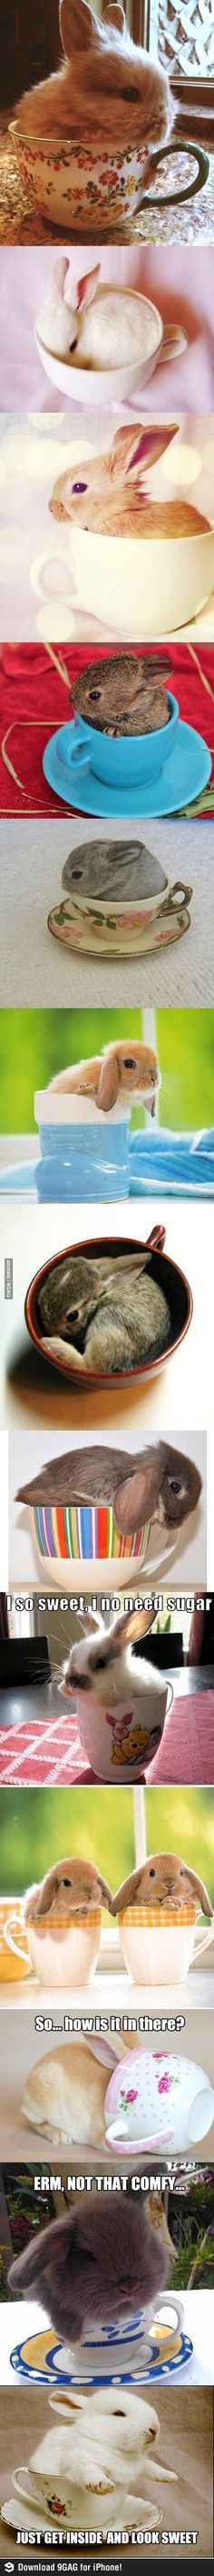 I dont like the concept that put the bunny into a tiny tea cup but they are amazingly cute in this ! awwwwwwwww